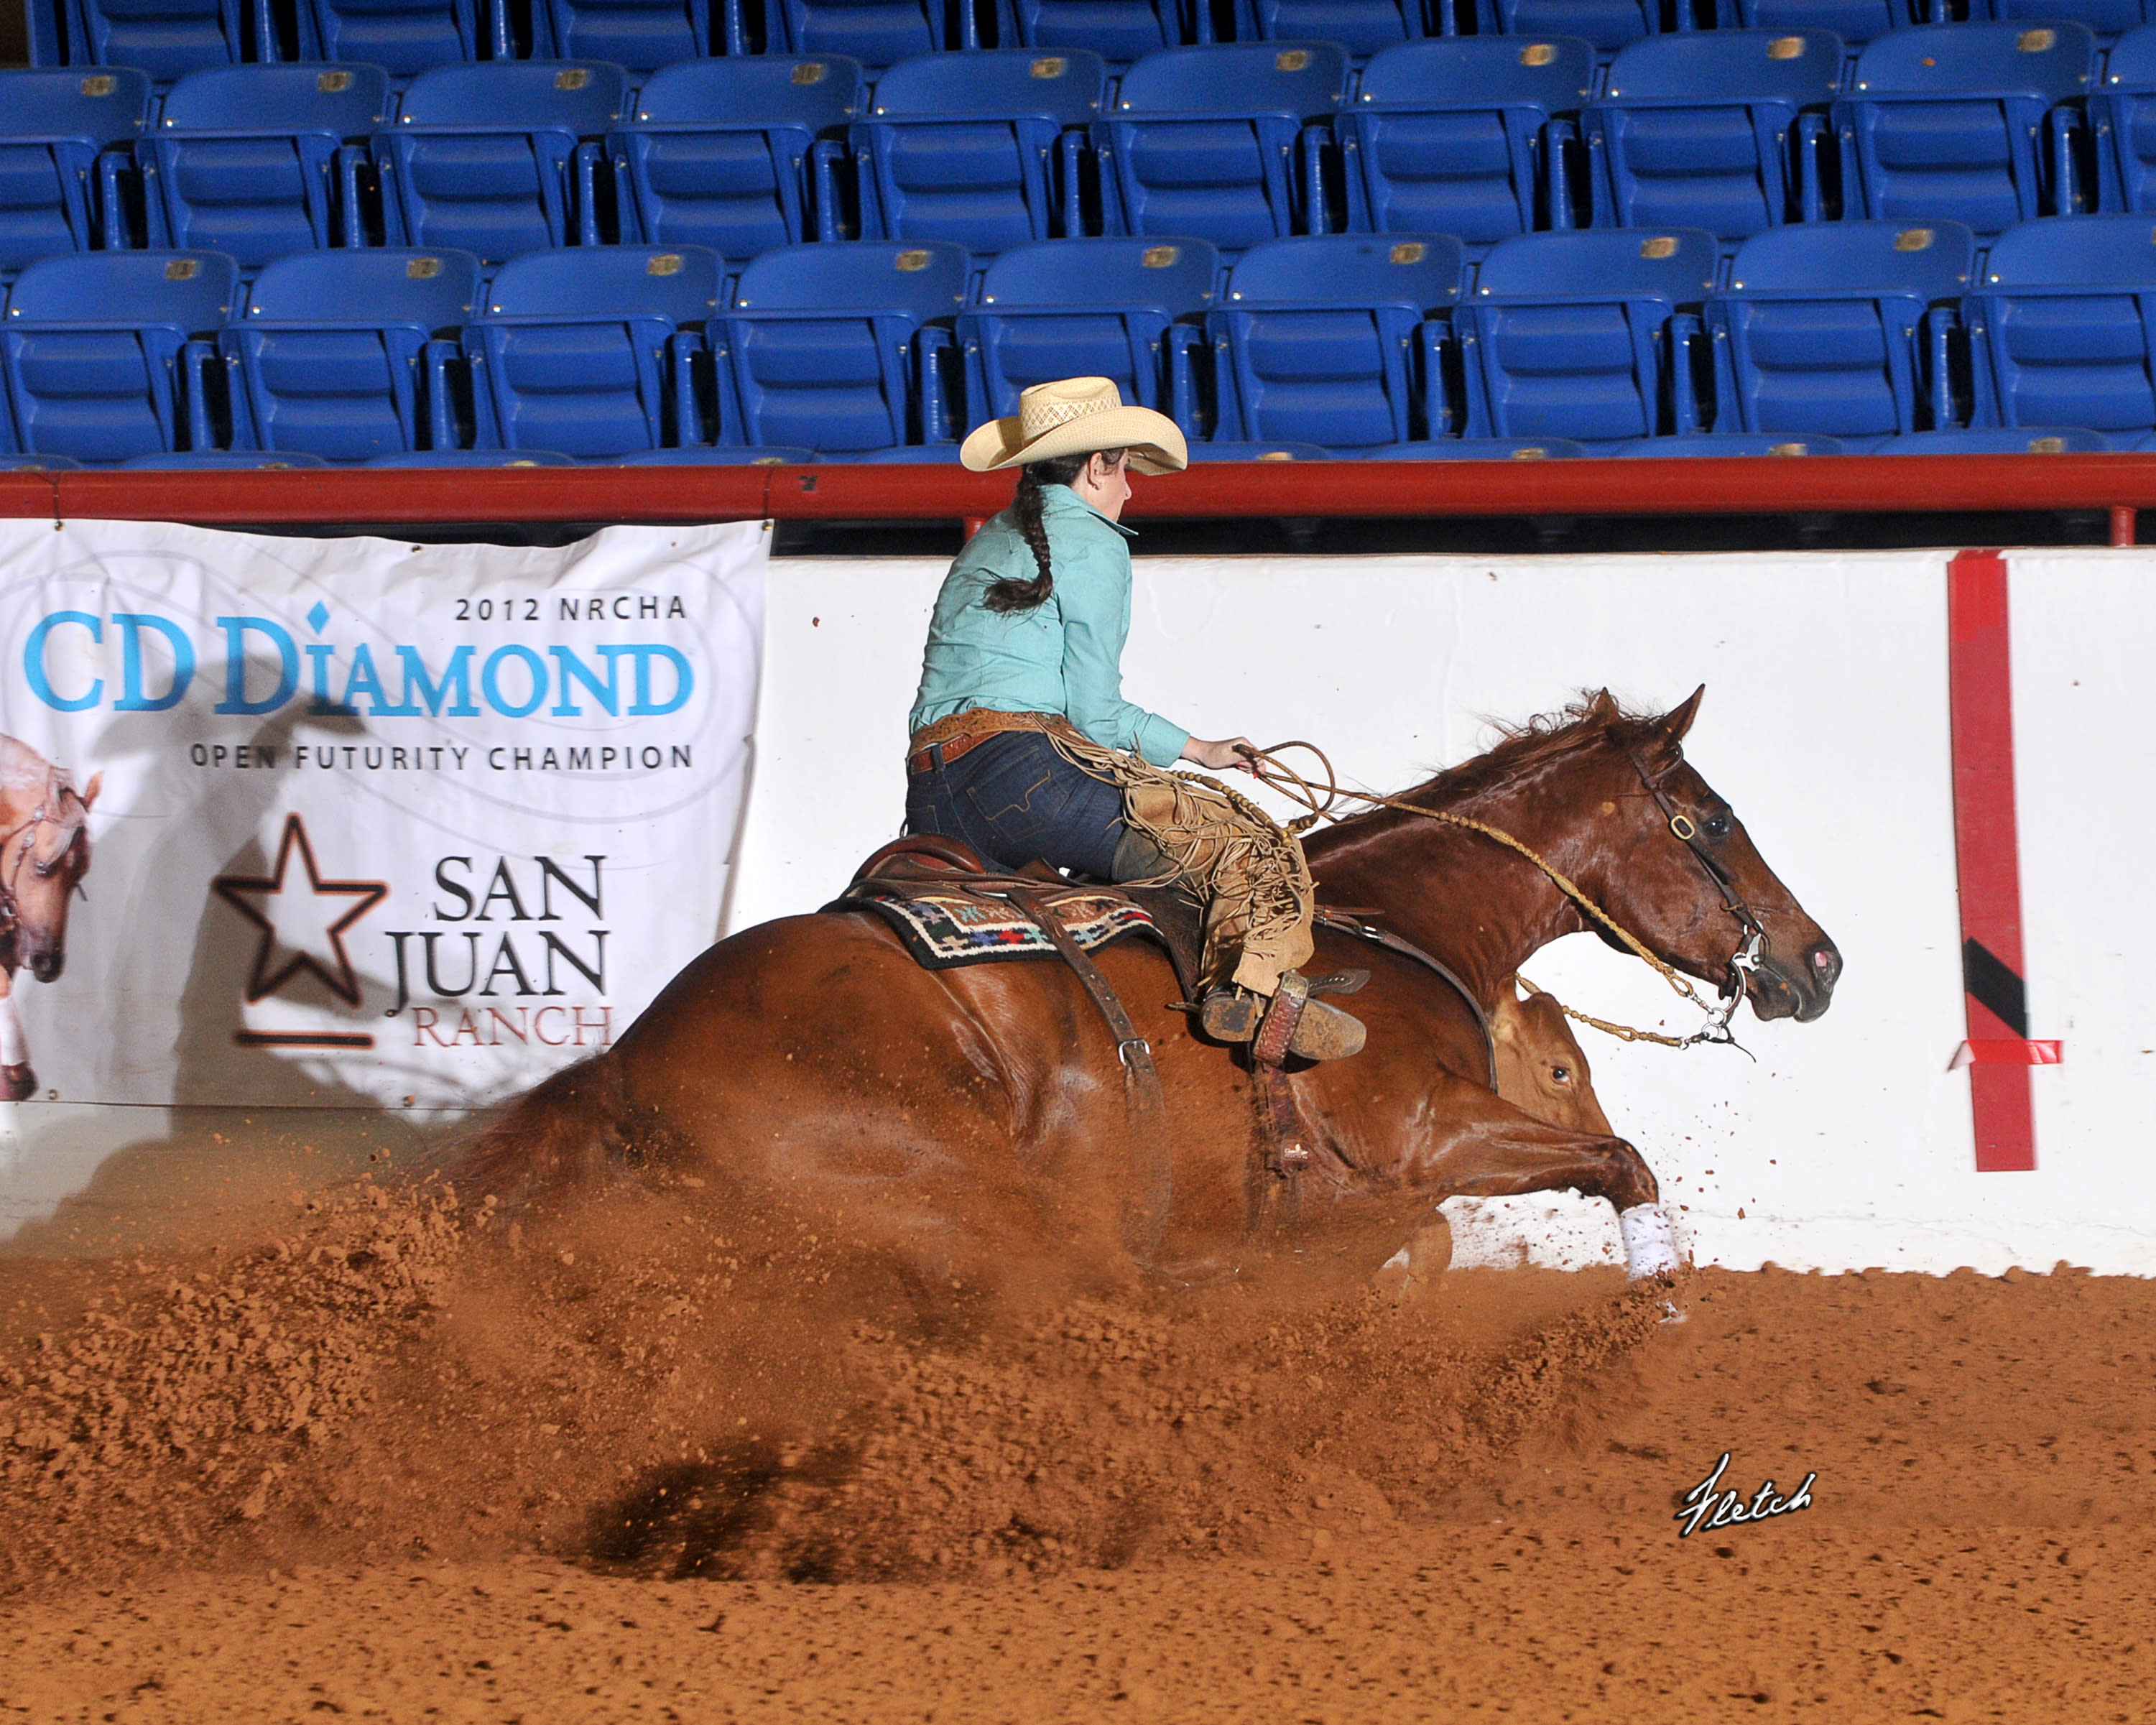 Southwest Reined Cow Horse Rode to Reno